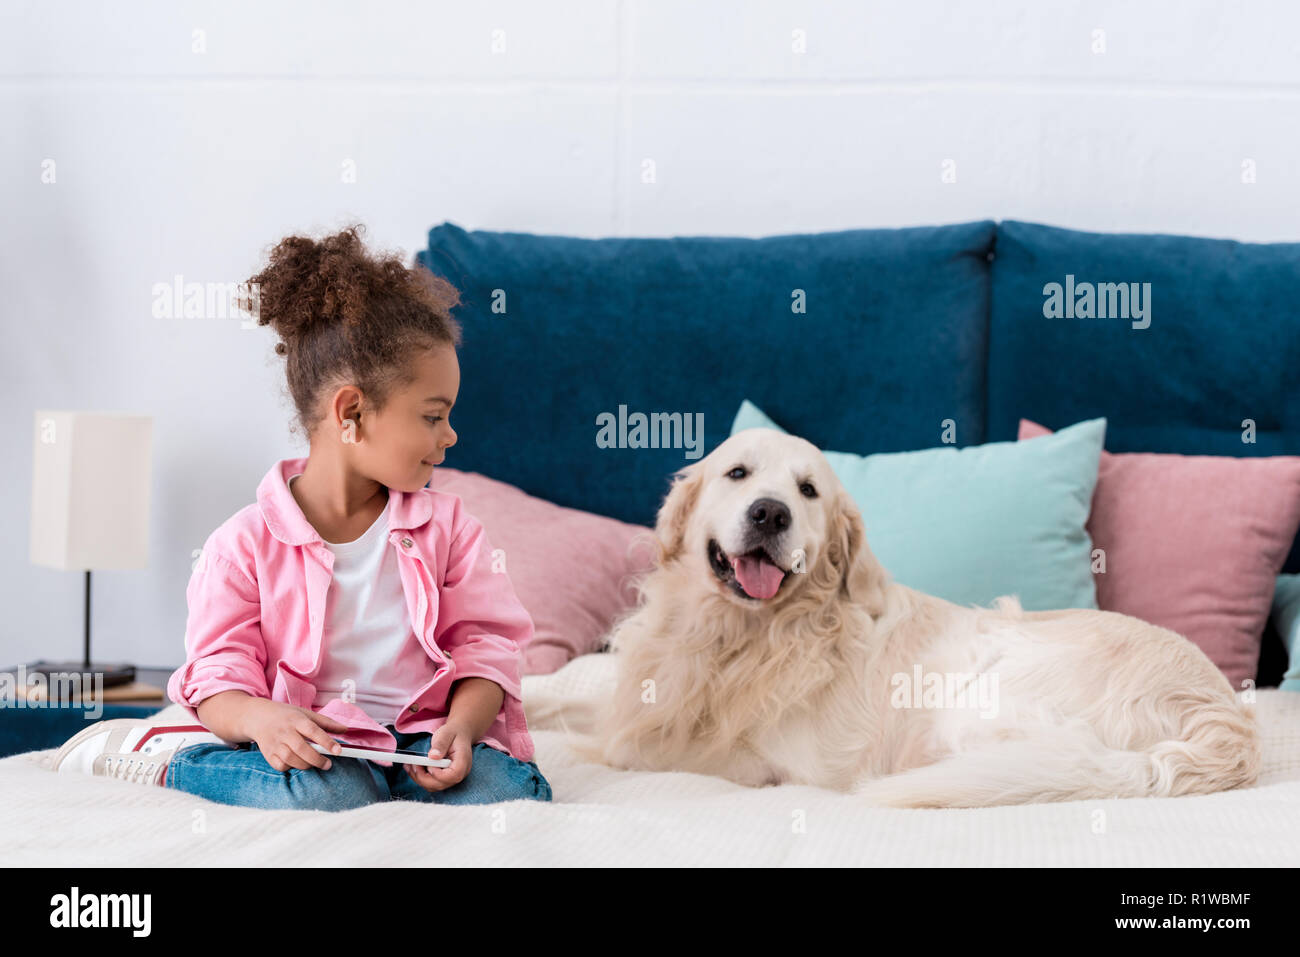 Curly african american kid sitting on the bed with smartphone and smiling golden retriever - Stock Image